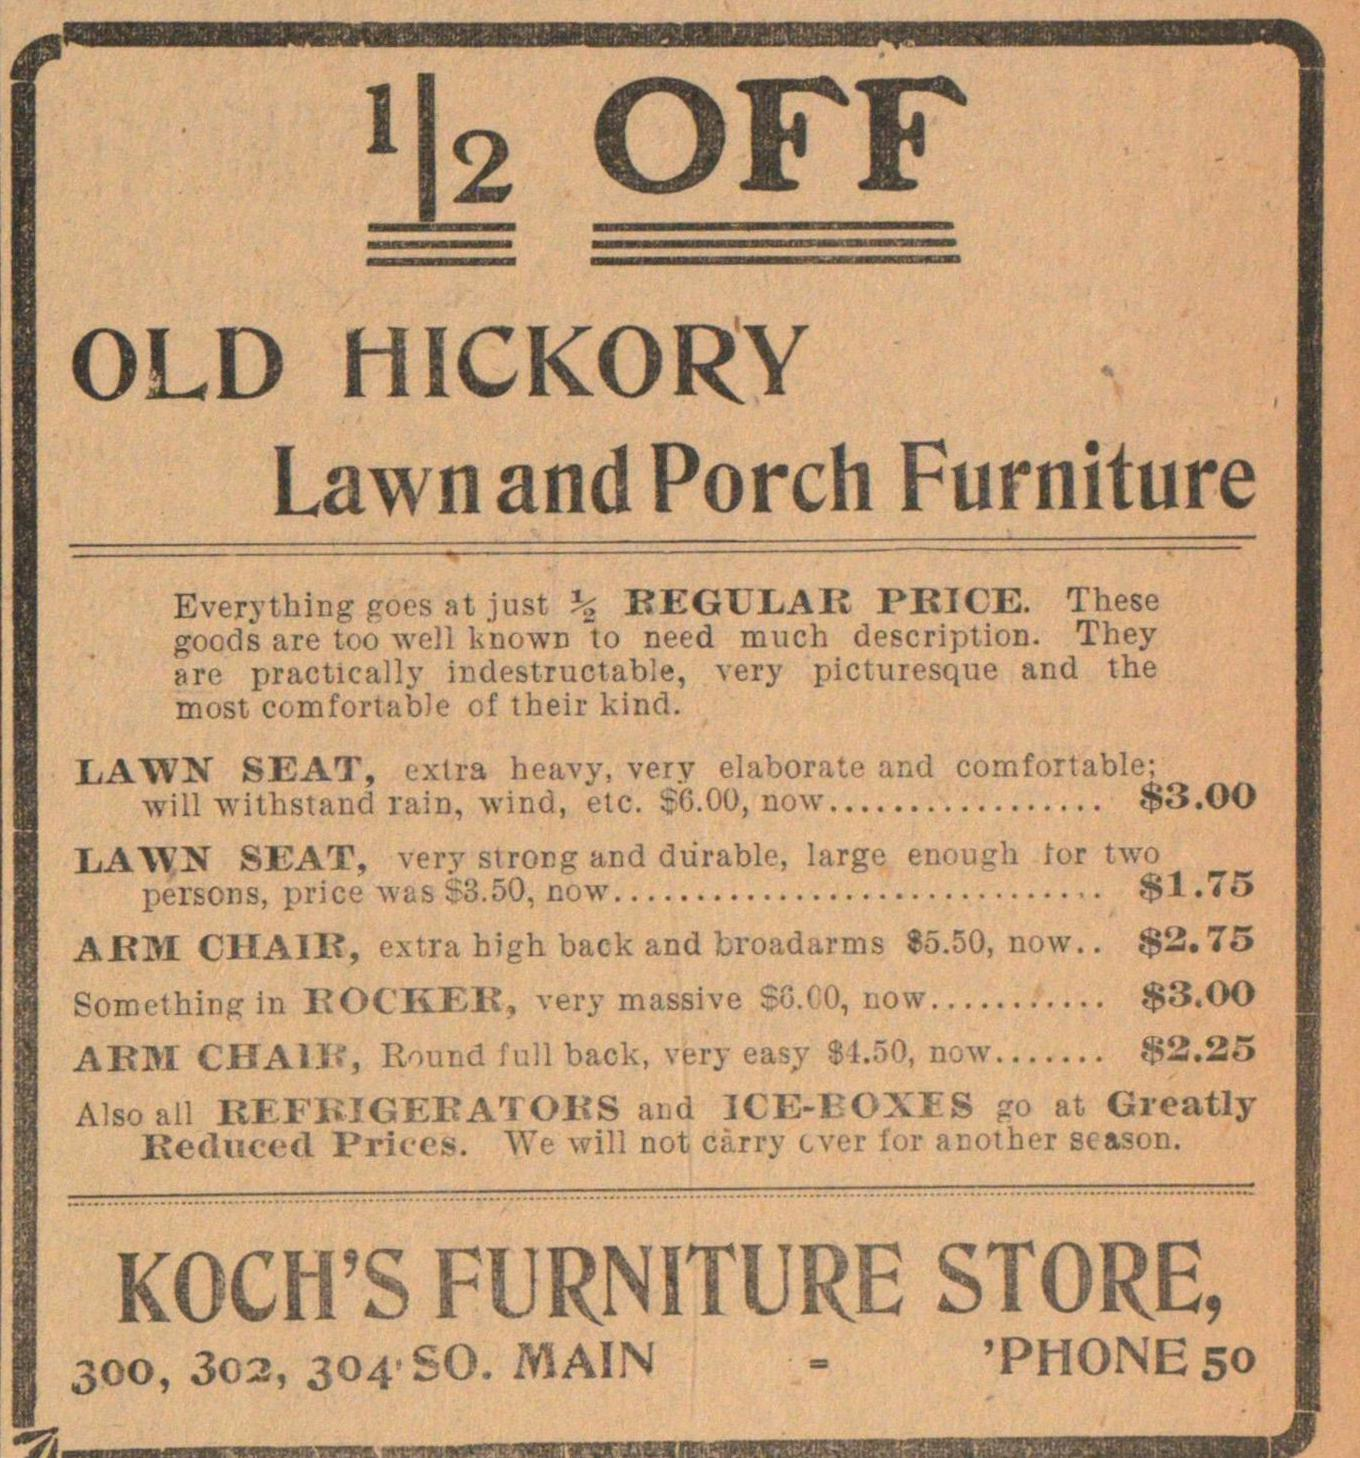 Koch's Furniture Store image